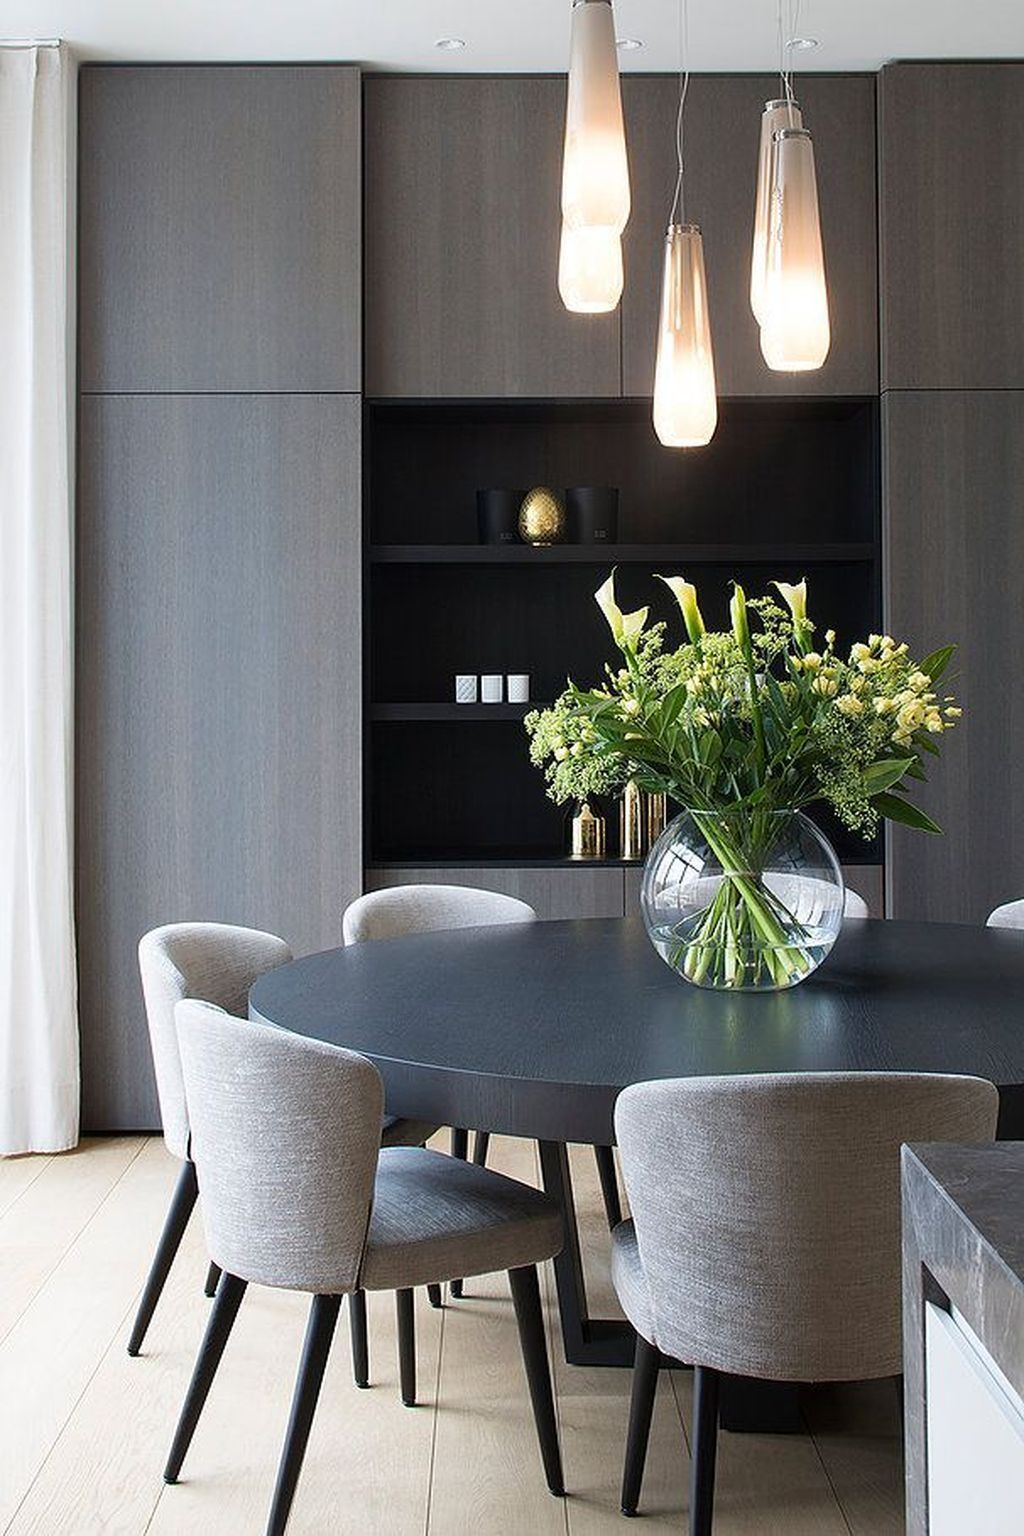 44 Stylish Dining Chairs Design Ideas Dining Chair Design